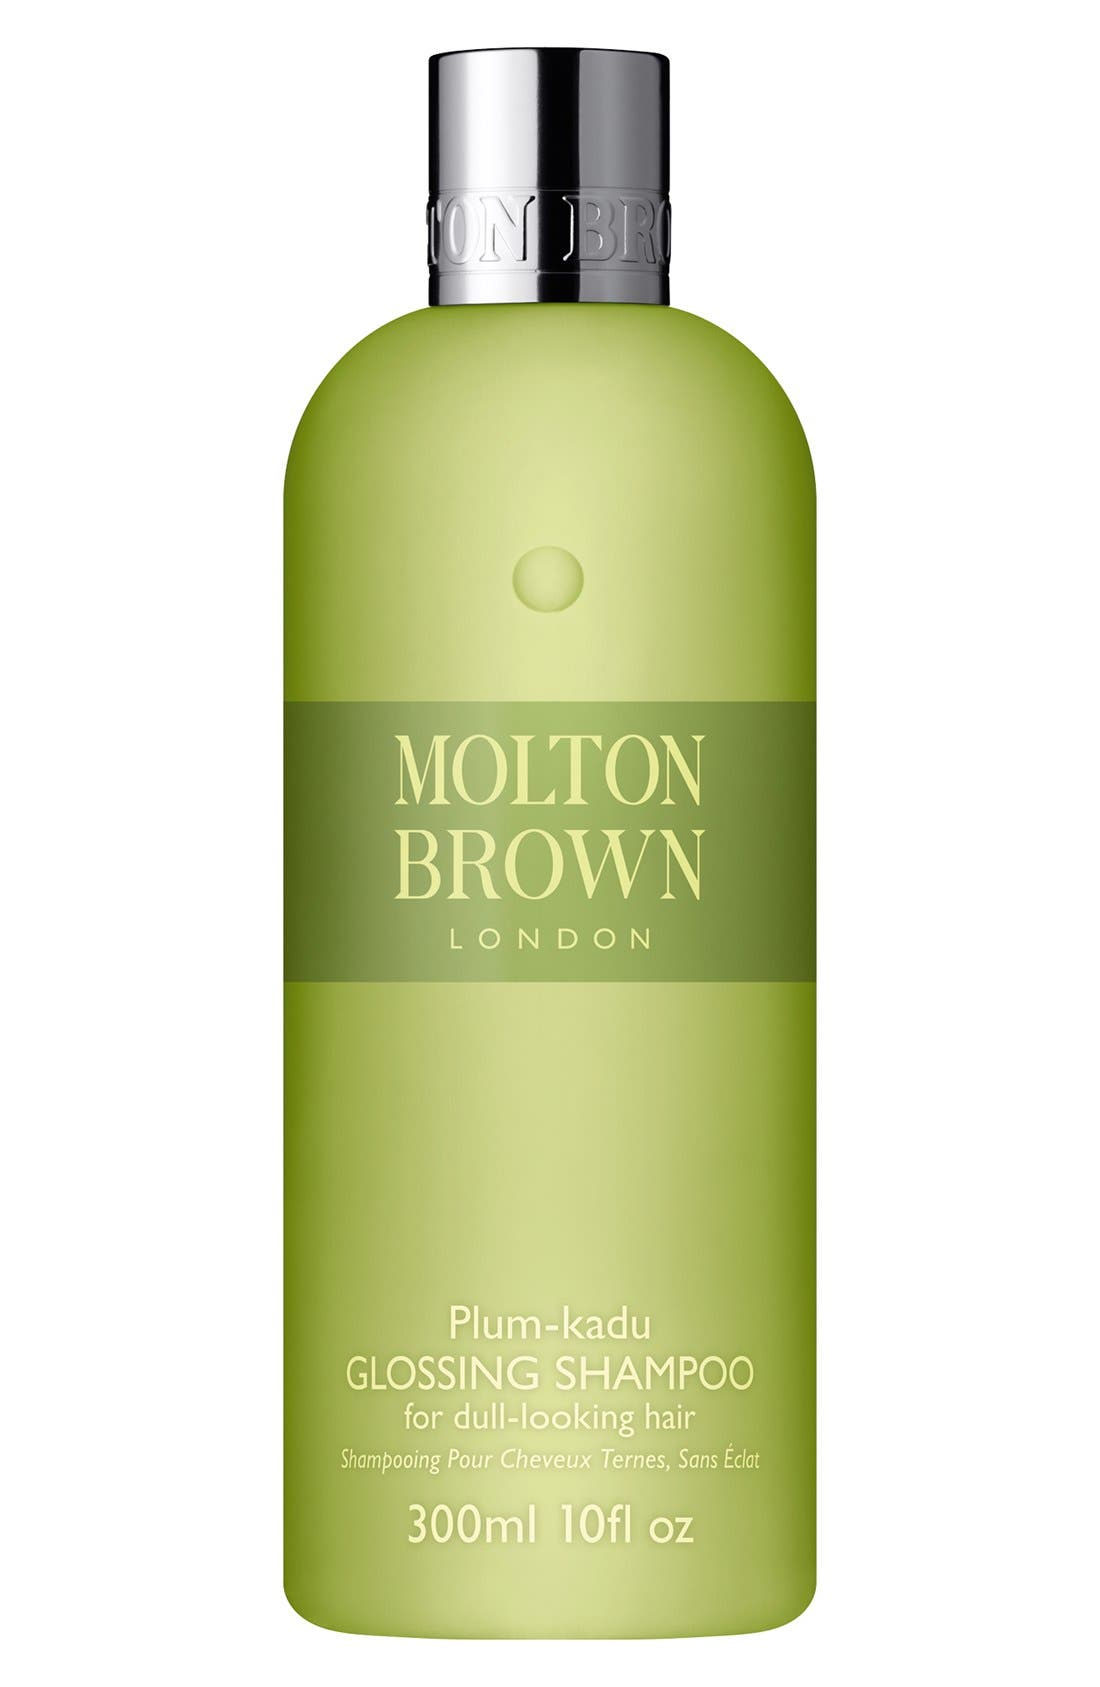 MOLTON BROWN London Plum-kadu Glossing Shampoo